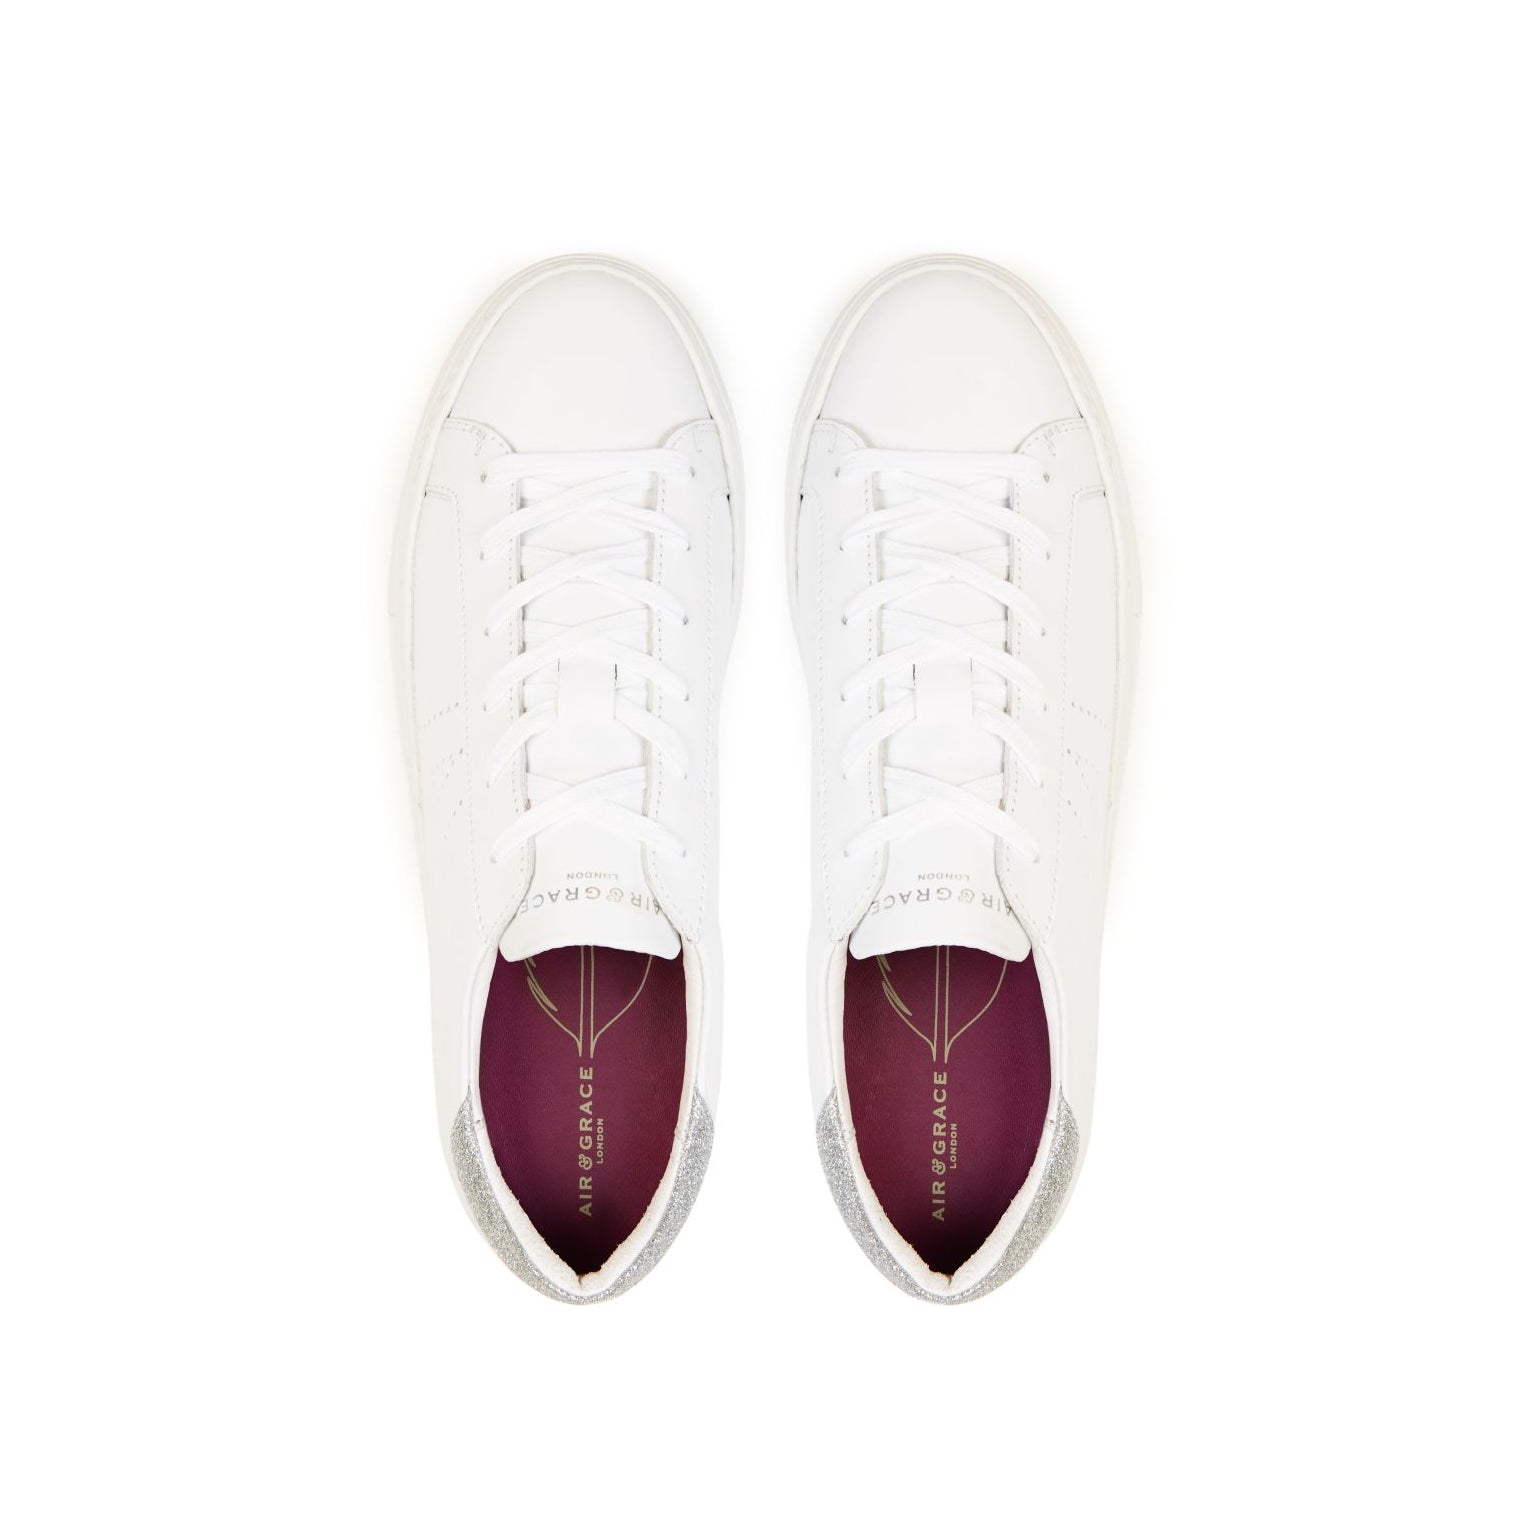 ROXY: WHITE & SILVER GLITTER PLATFORM TRAINERS  - (Pre-Order - dispatch w/c 28th September)